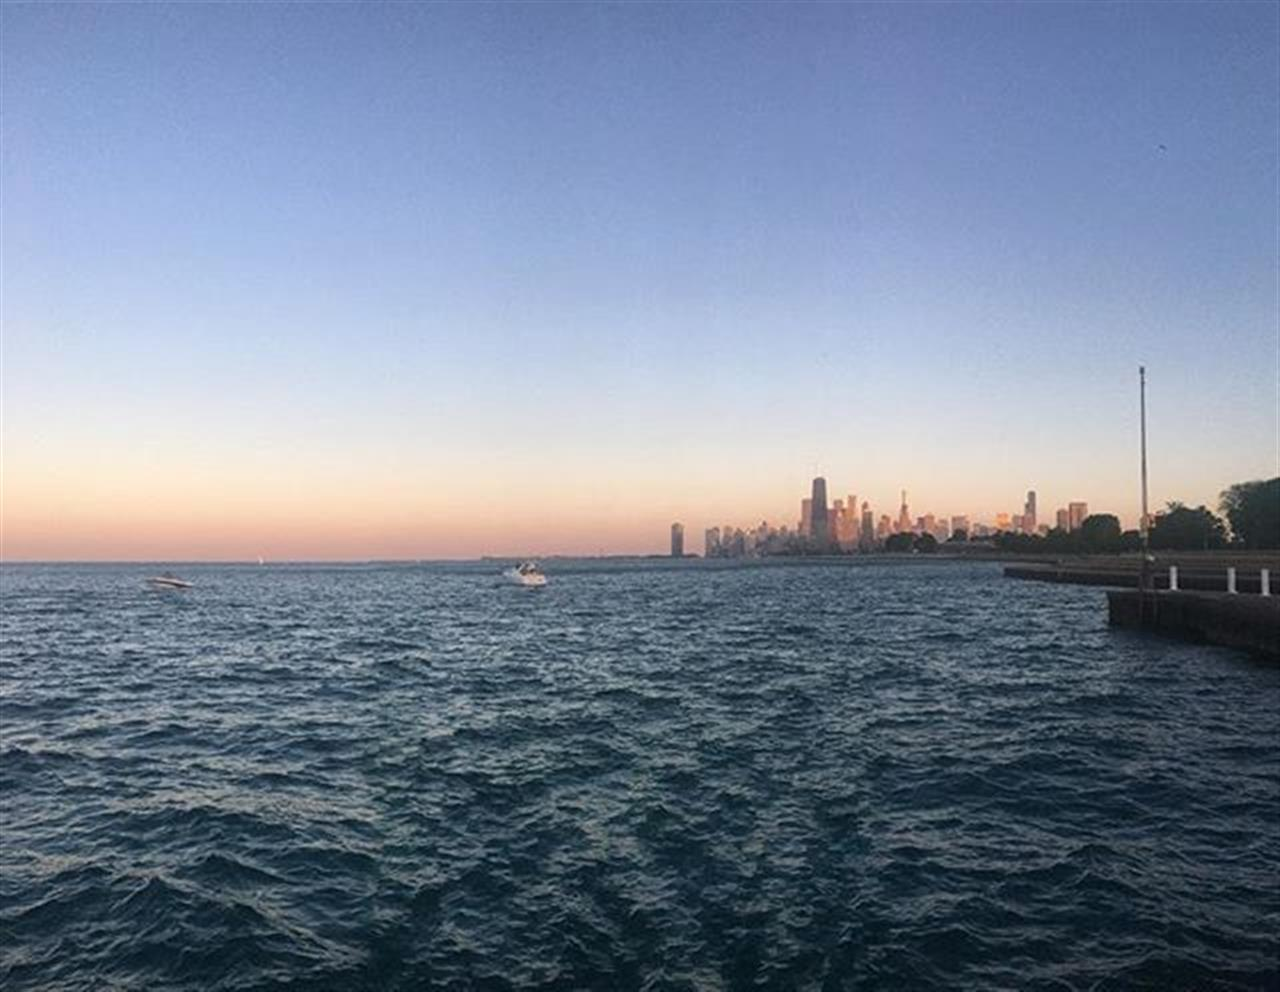 Gradient skyline #chicago #lincolnpark #lakeview #leadingrelocal #bairdwarner